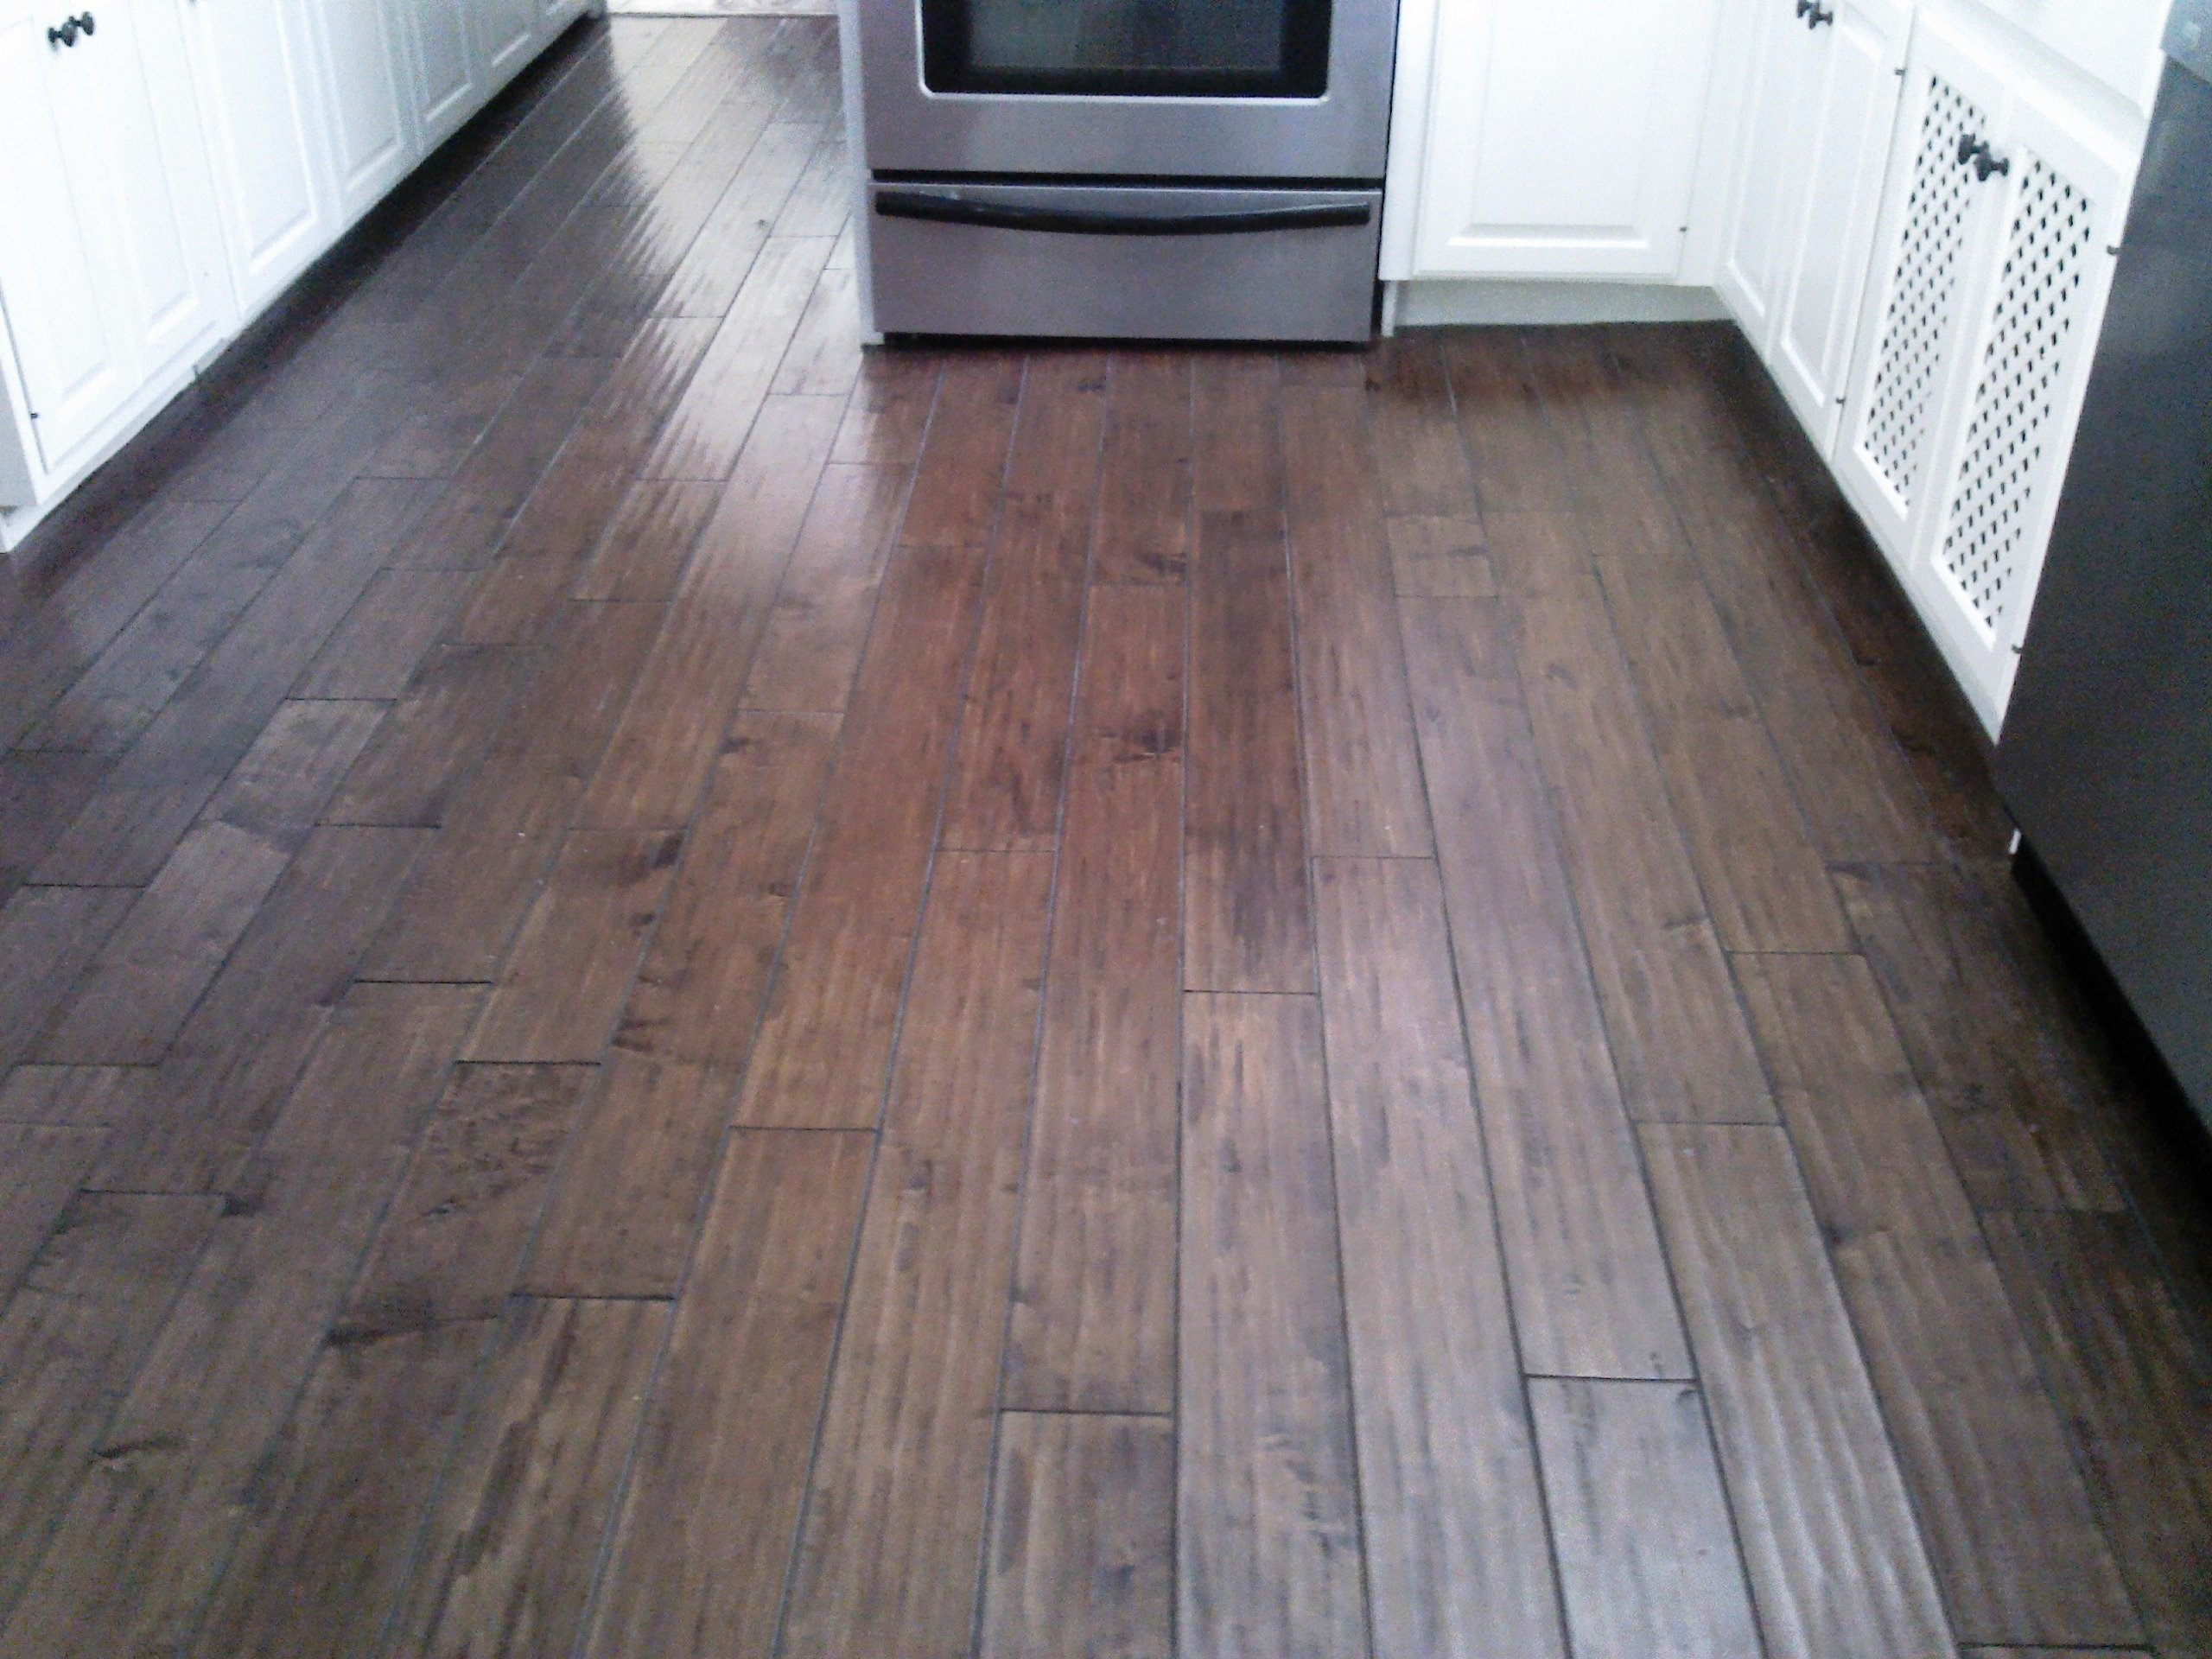 Permalink to Dark Wood Effect Ceramic Floor Tiles